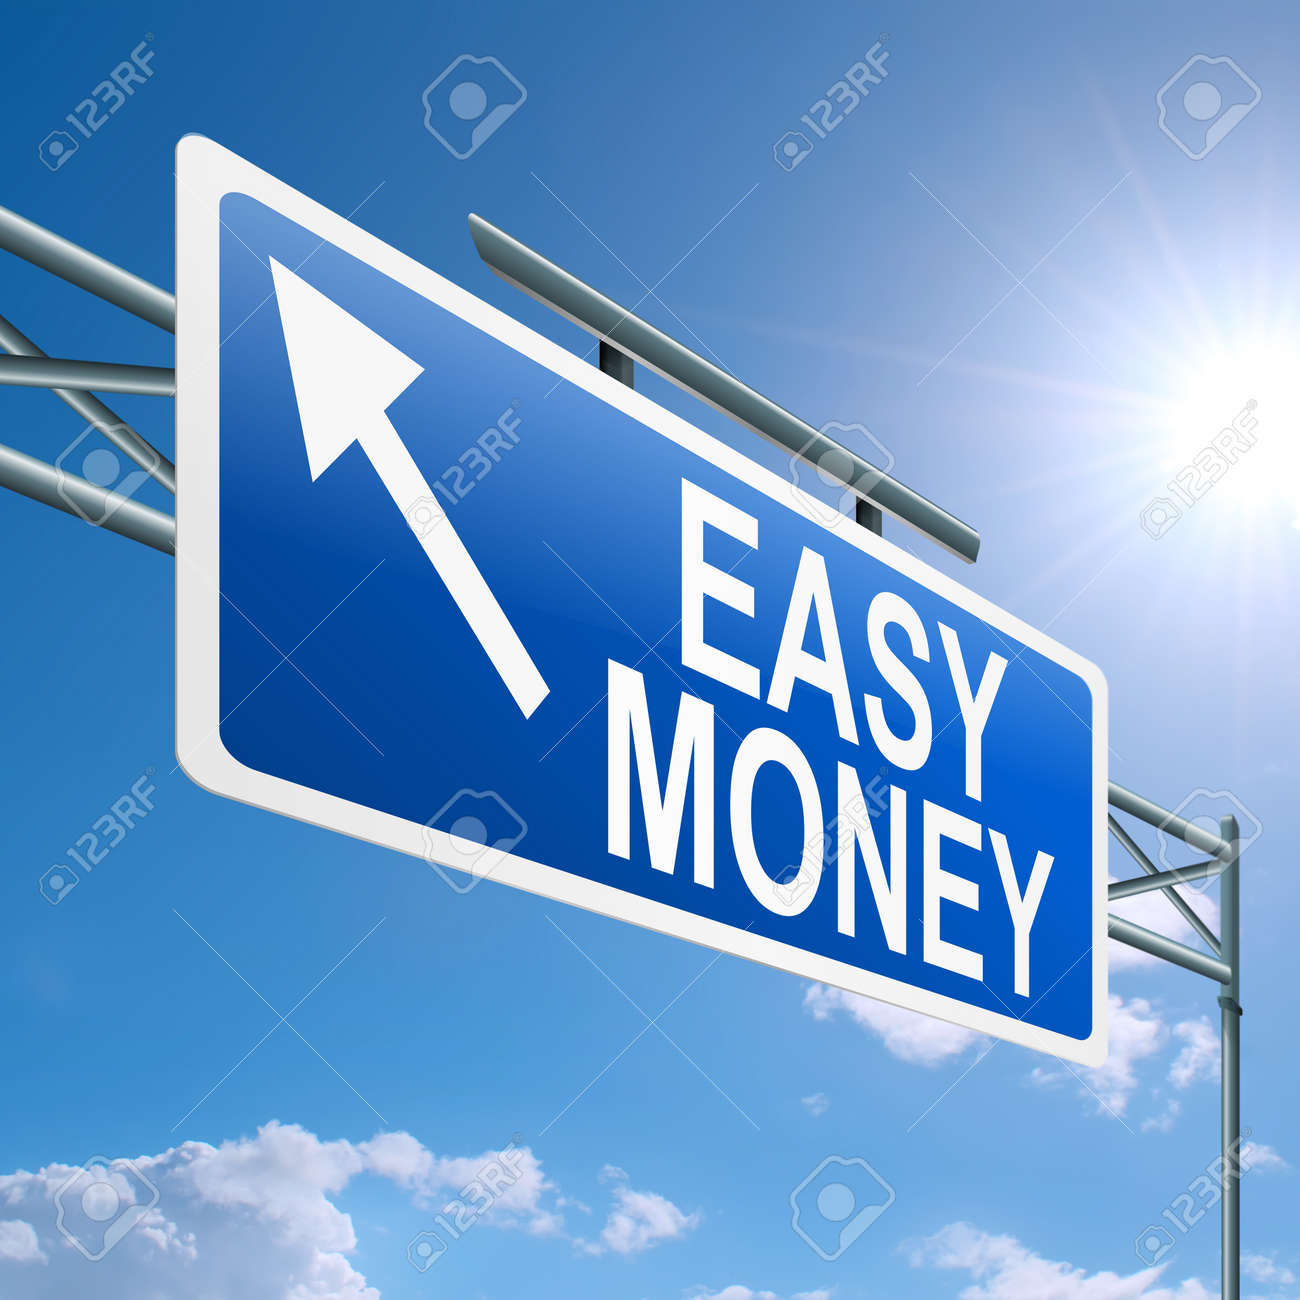 Illustration depicting a highway gantry sign with an easy money concept. Blue sky background. Stock Illustration - 14191221